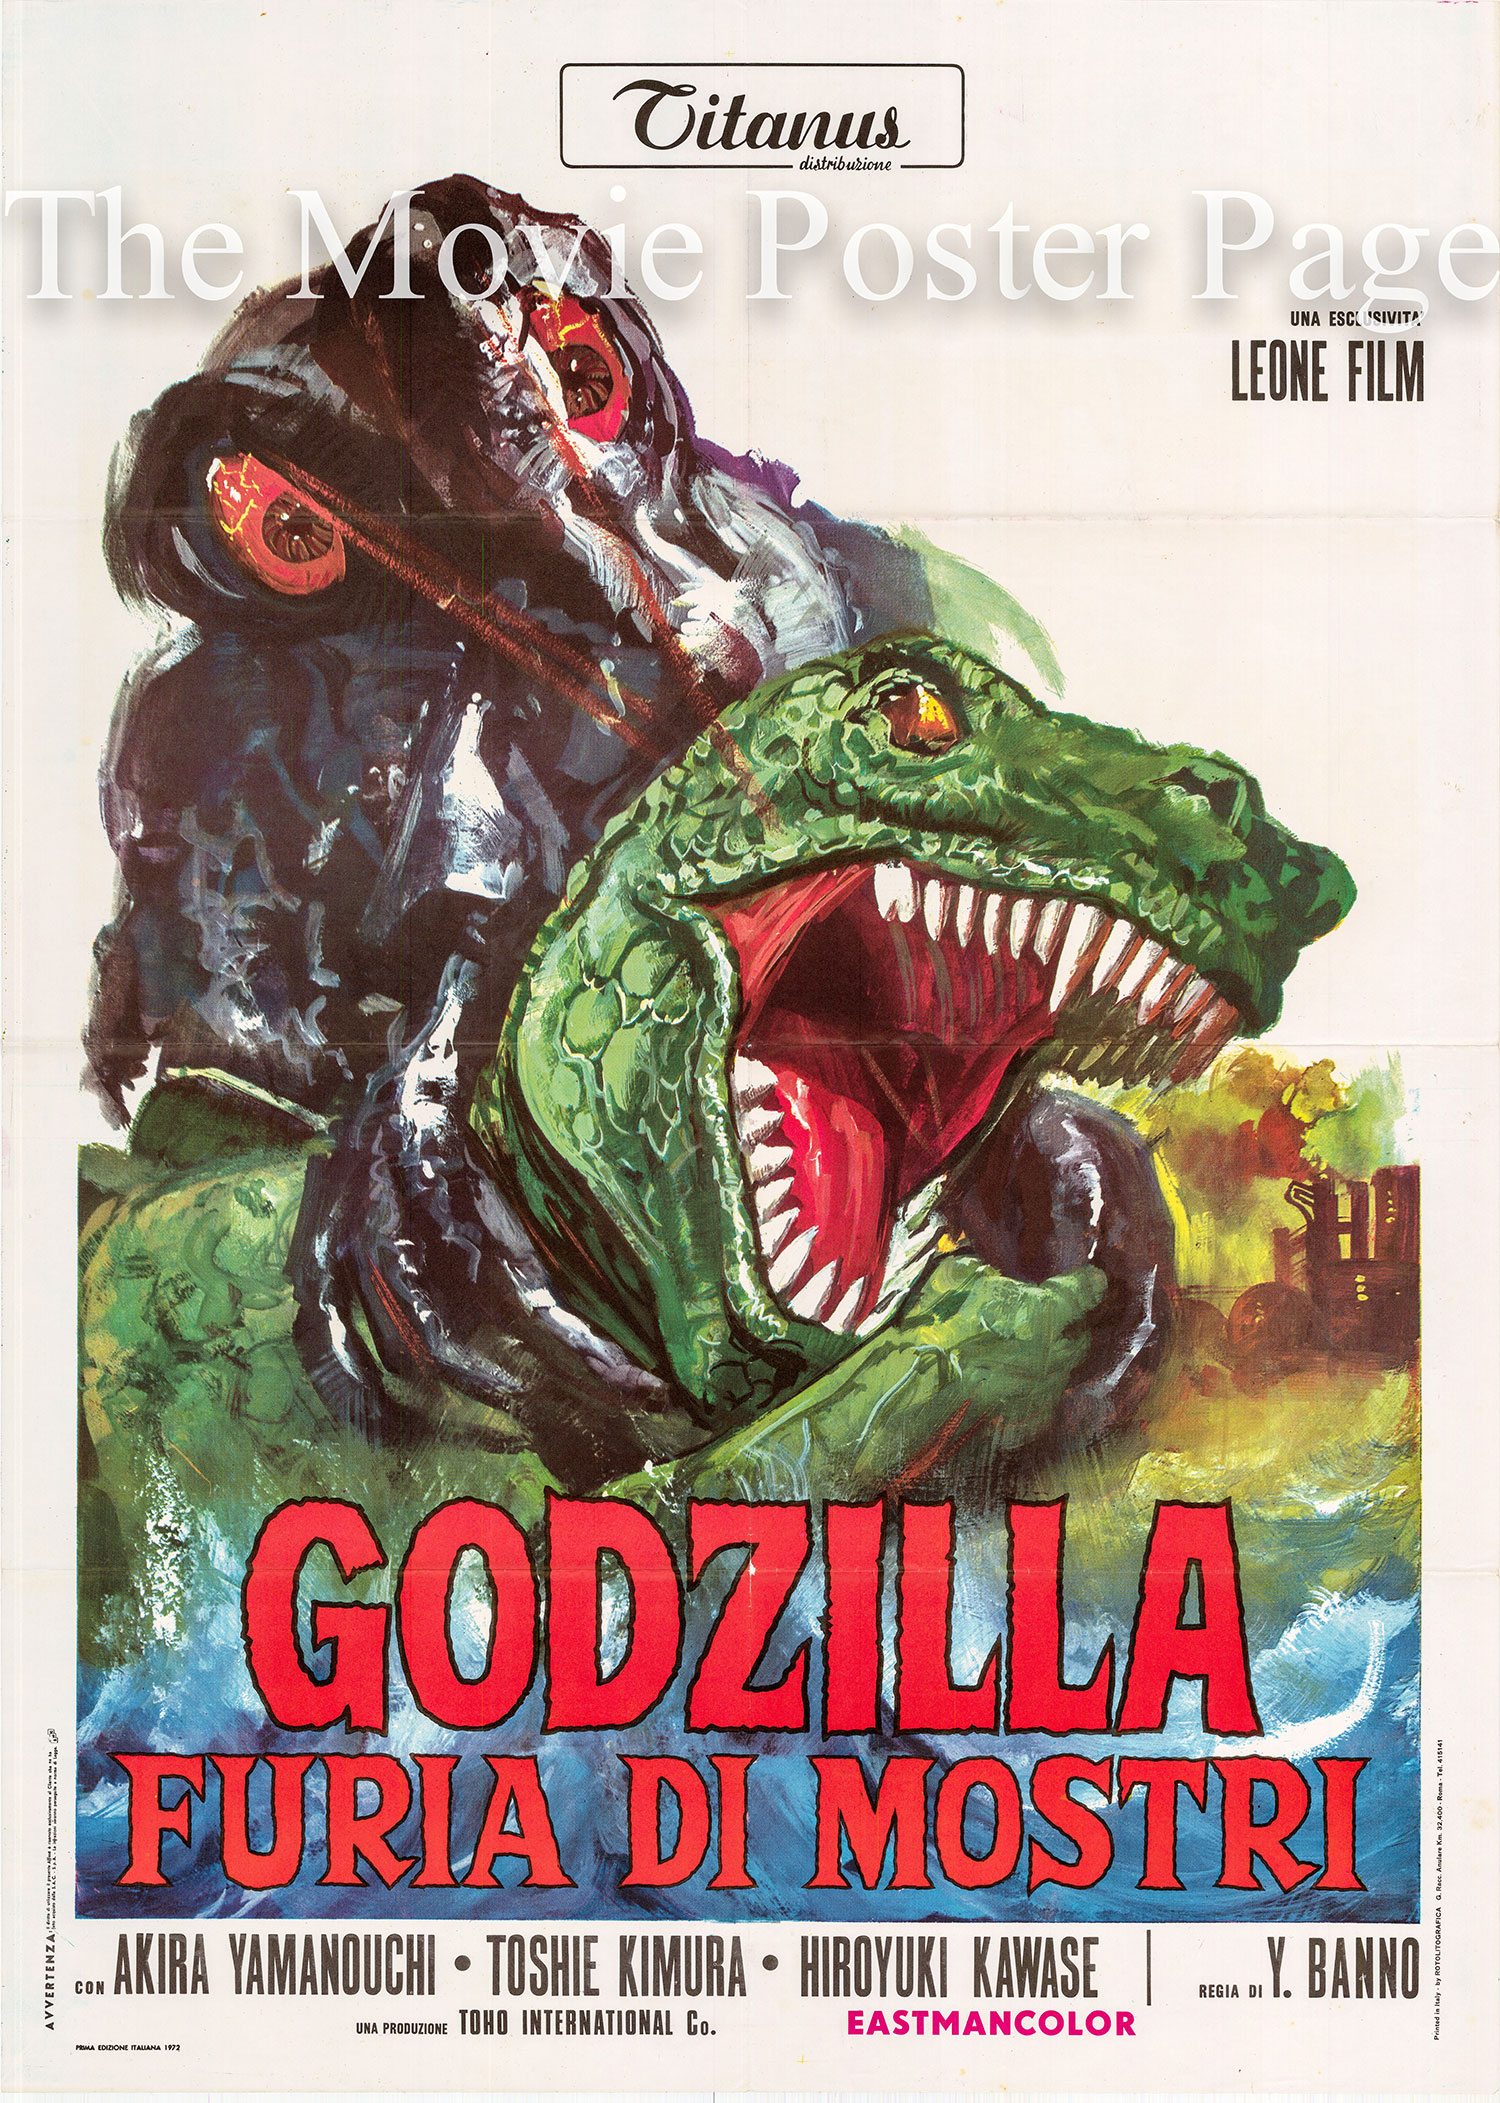 Pictured is an Italian two-sheet poster for the 1971 Yoshimitsu Banno film Godzilla vs. the Smog Monster, starring Akira Yamauchi as Dr. Toru Yano.